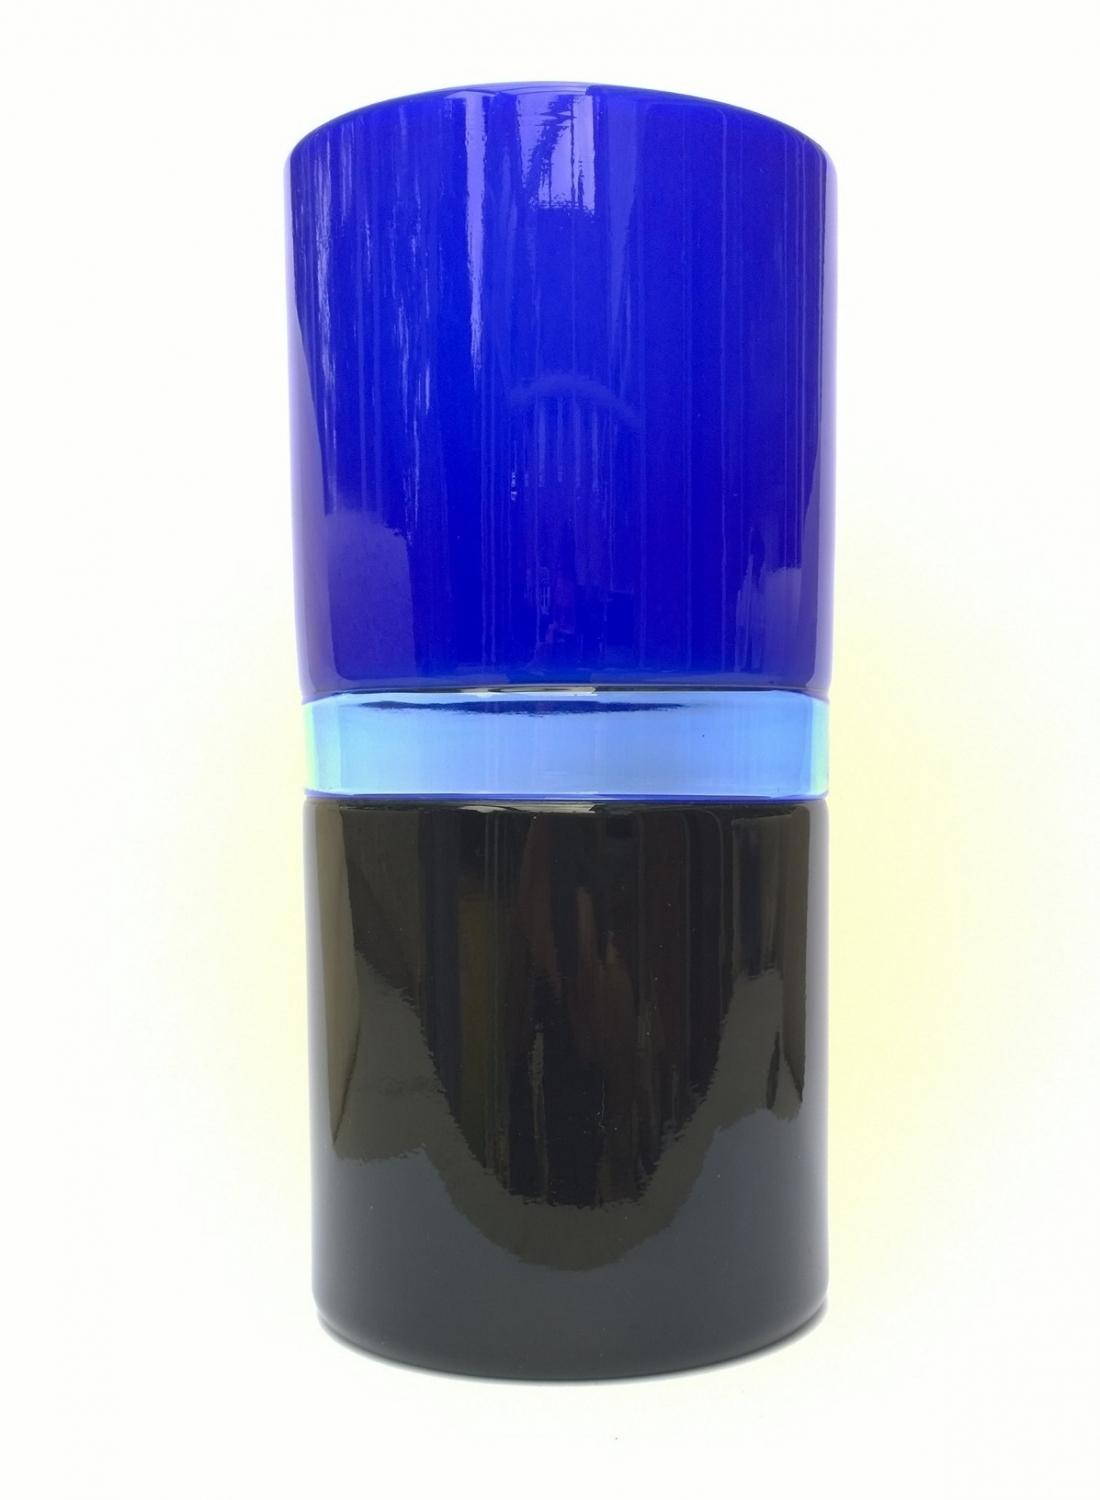 Venini Tuuli blue glass vase